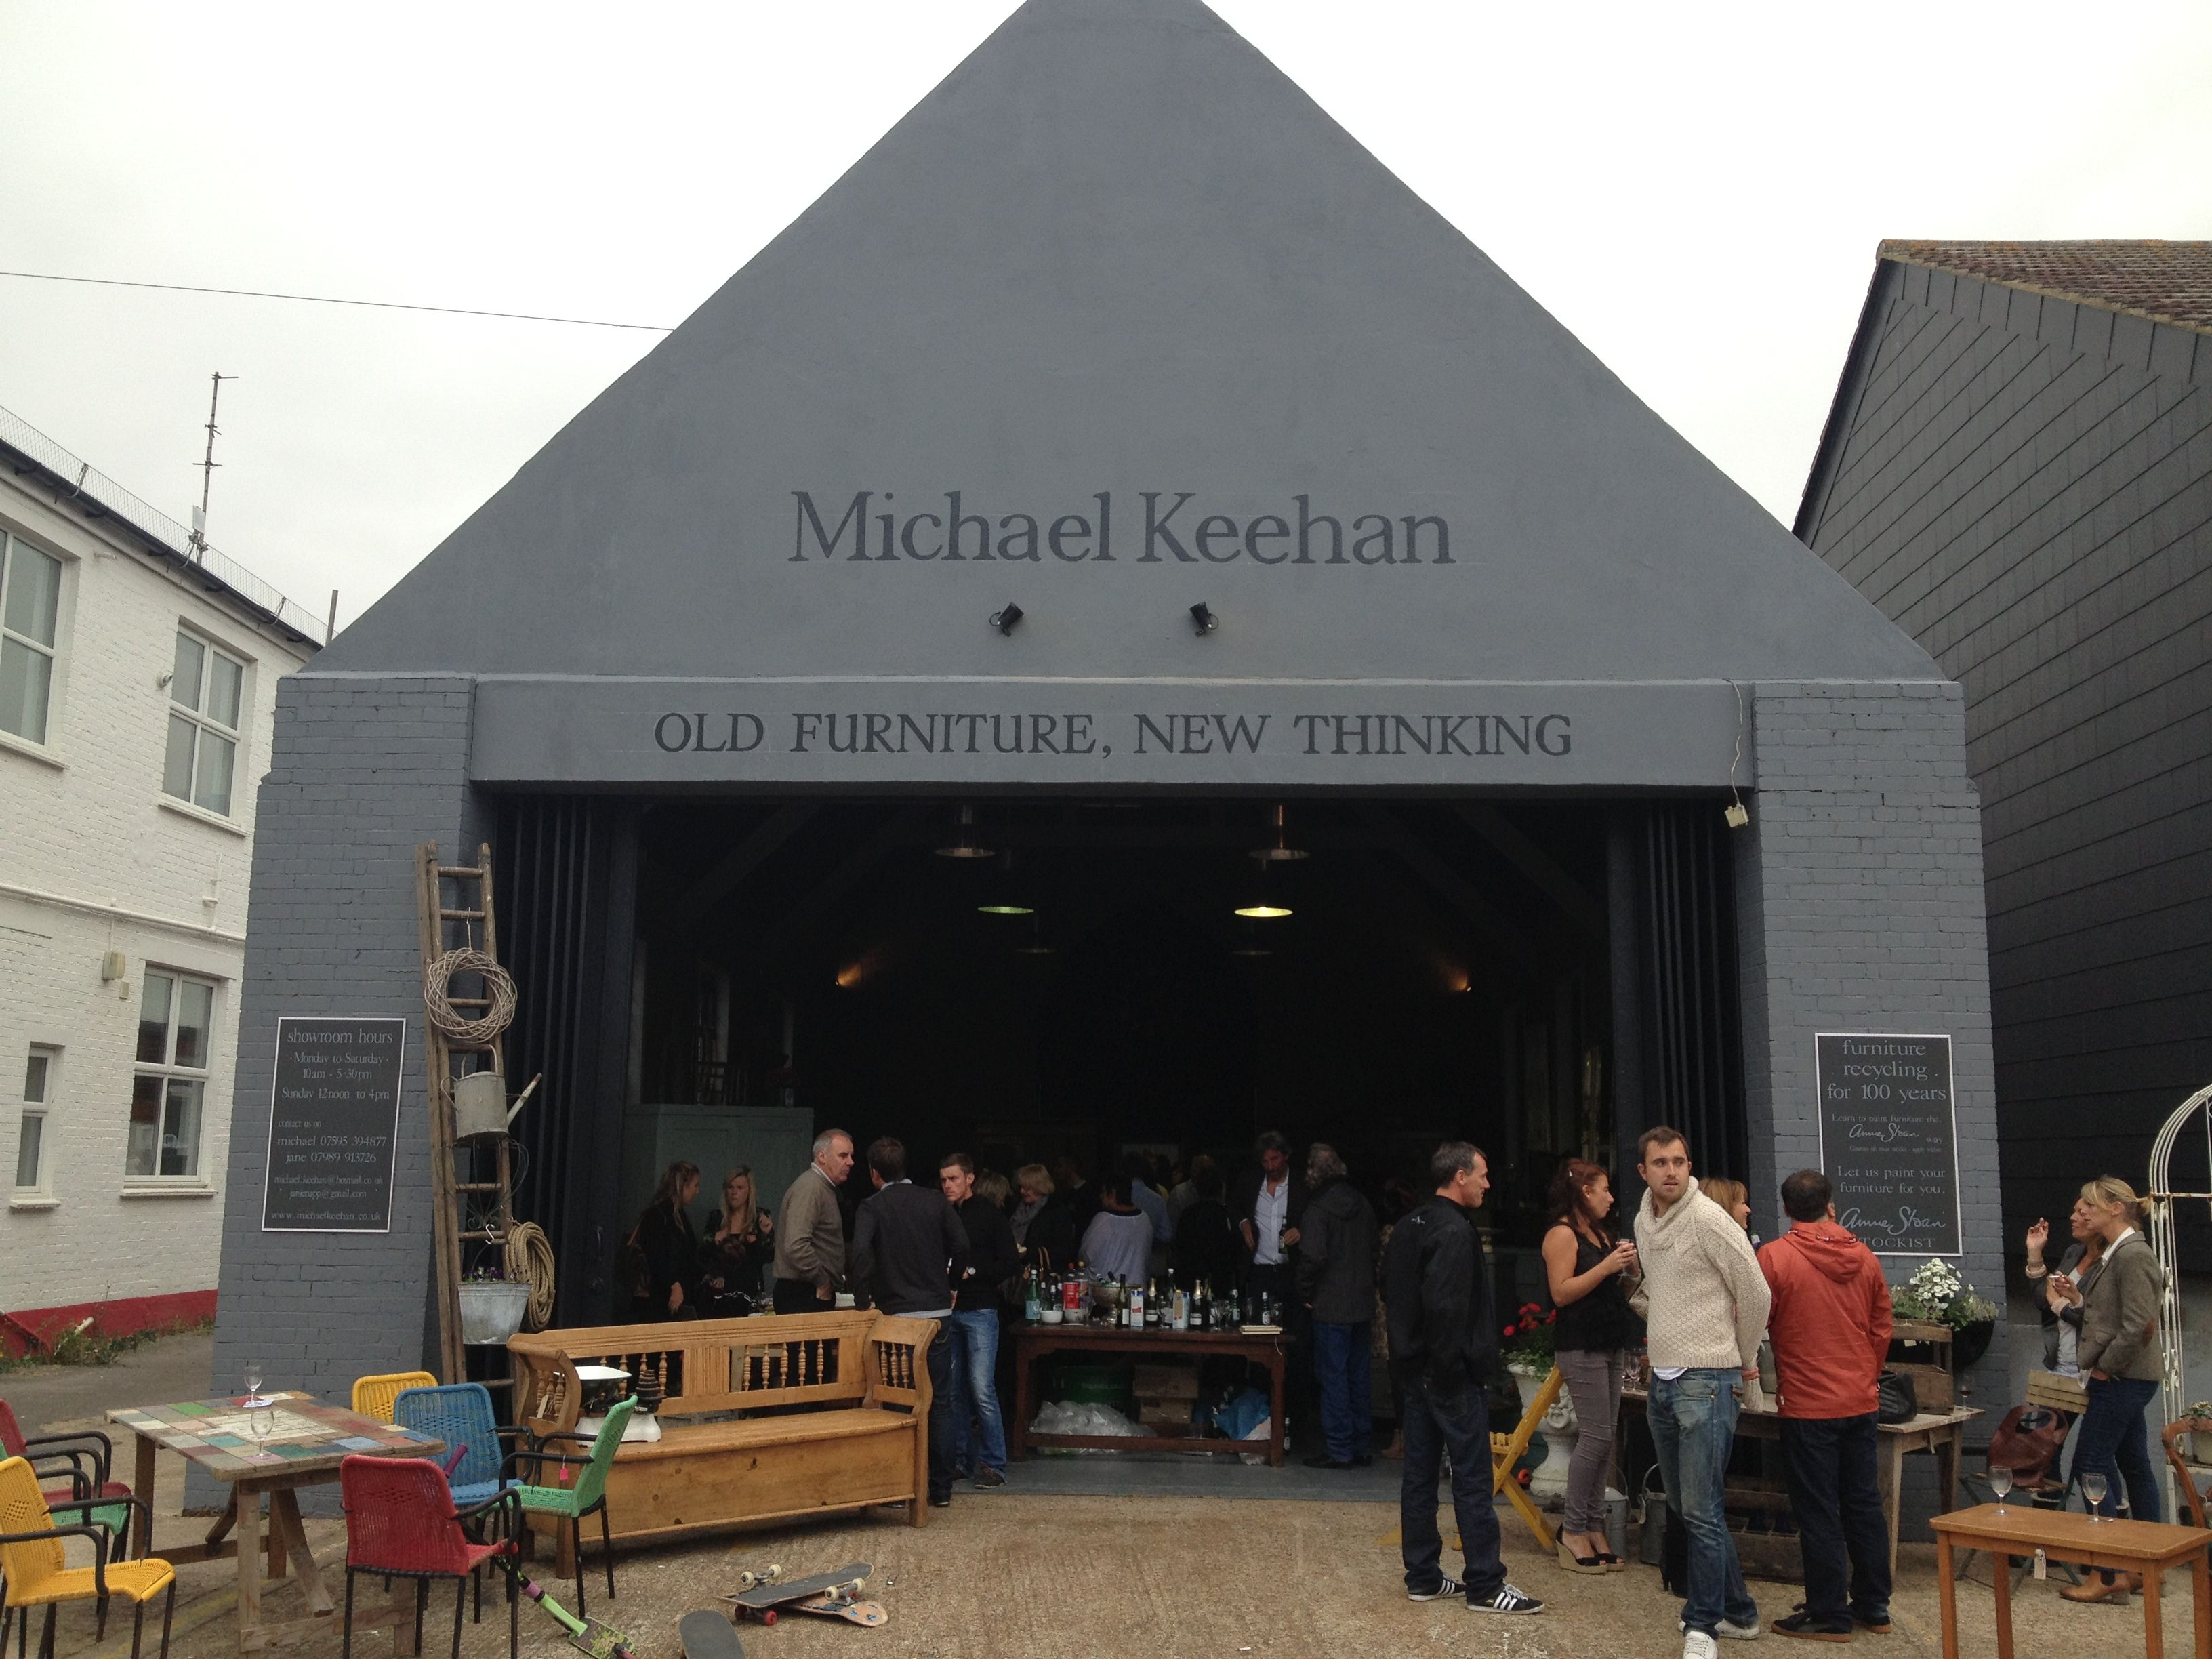 Michael keehans great new shop in portslade near brighton and michael keehans great new shop in portslade near brighton and hove in sussex kristyandbryce Image collections